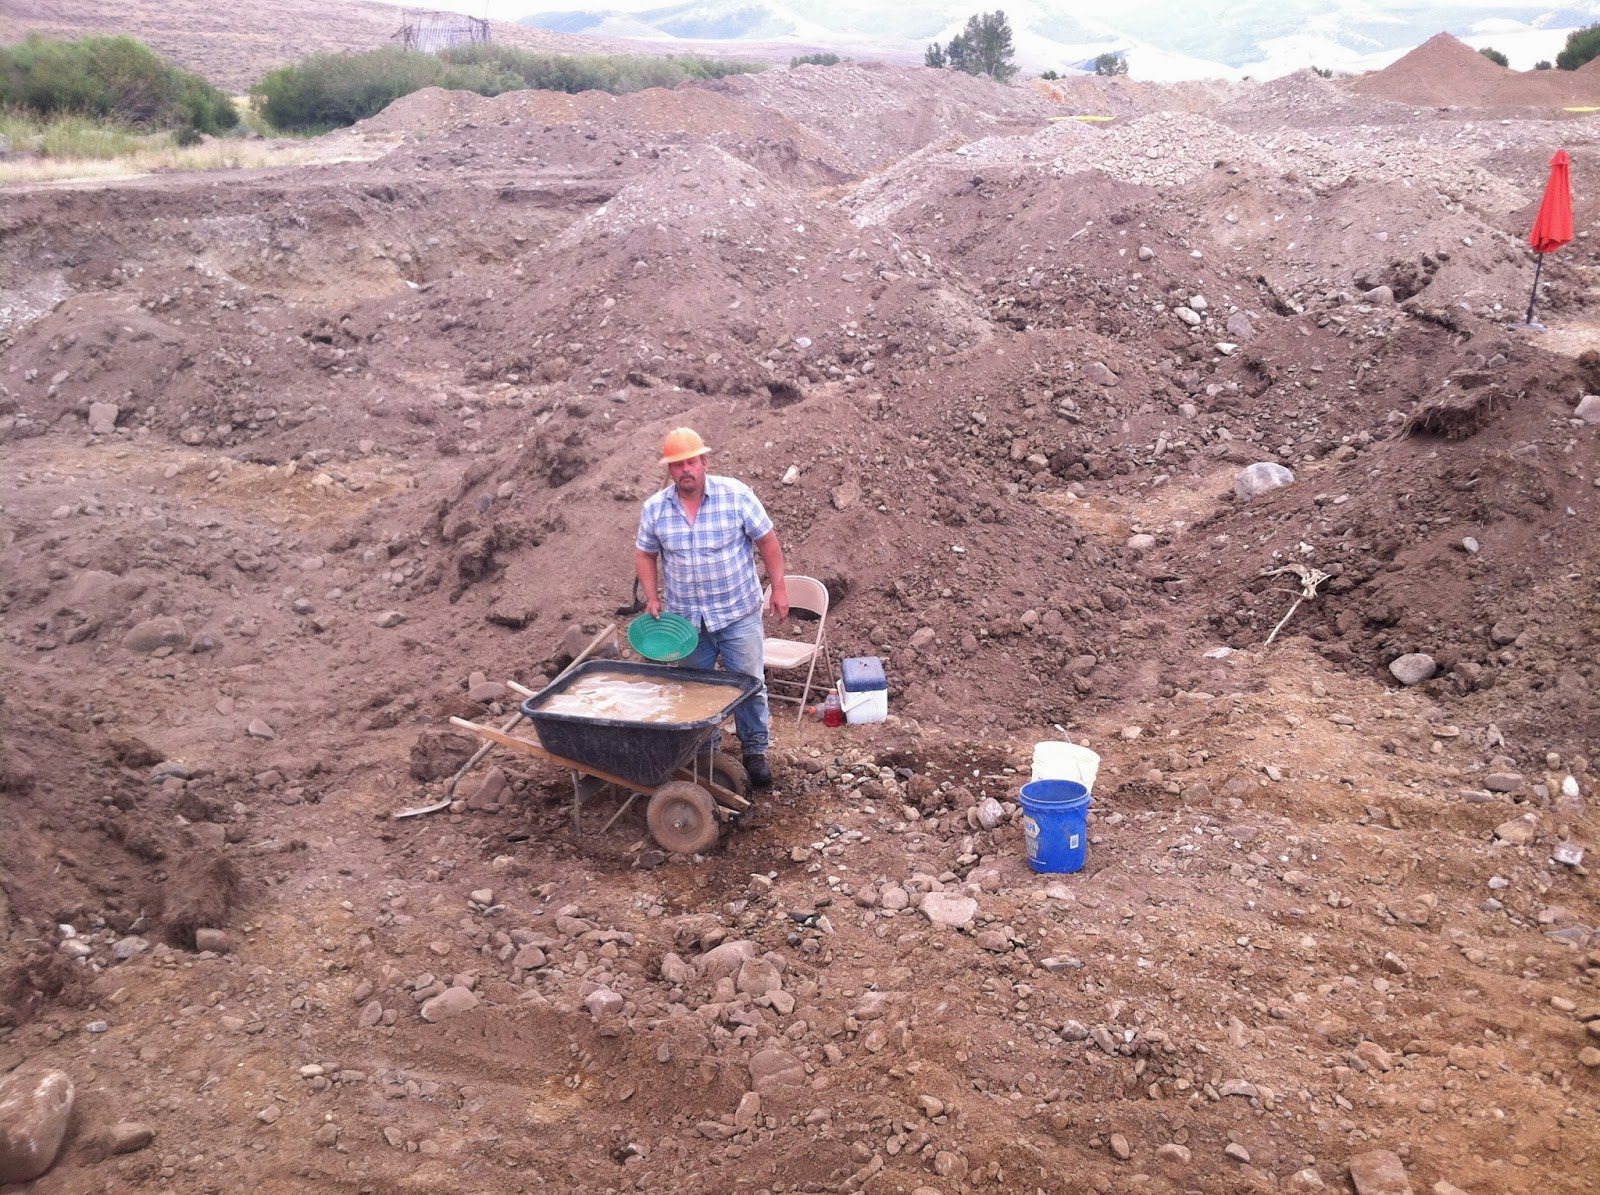 A good panner  will help your placer mining endeavors